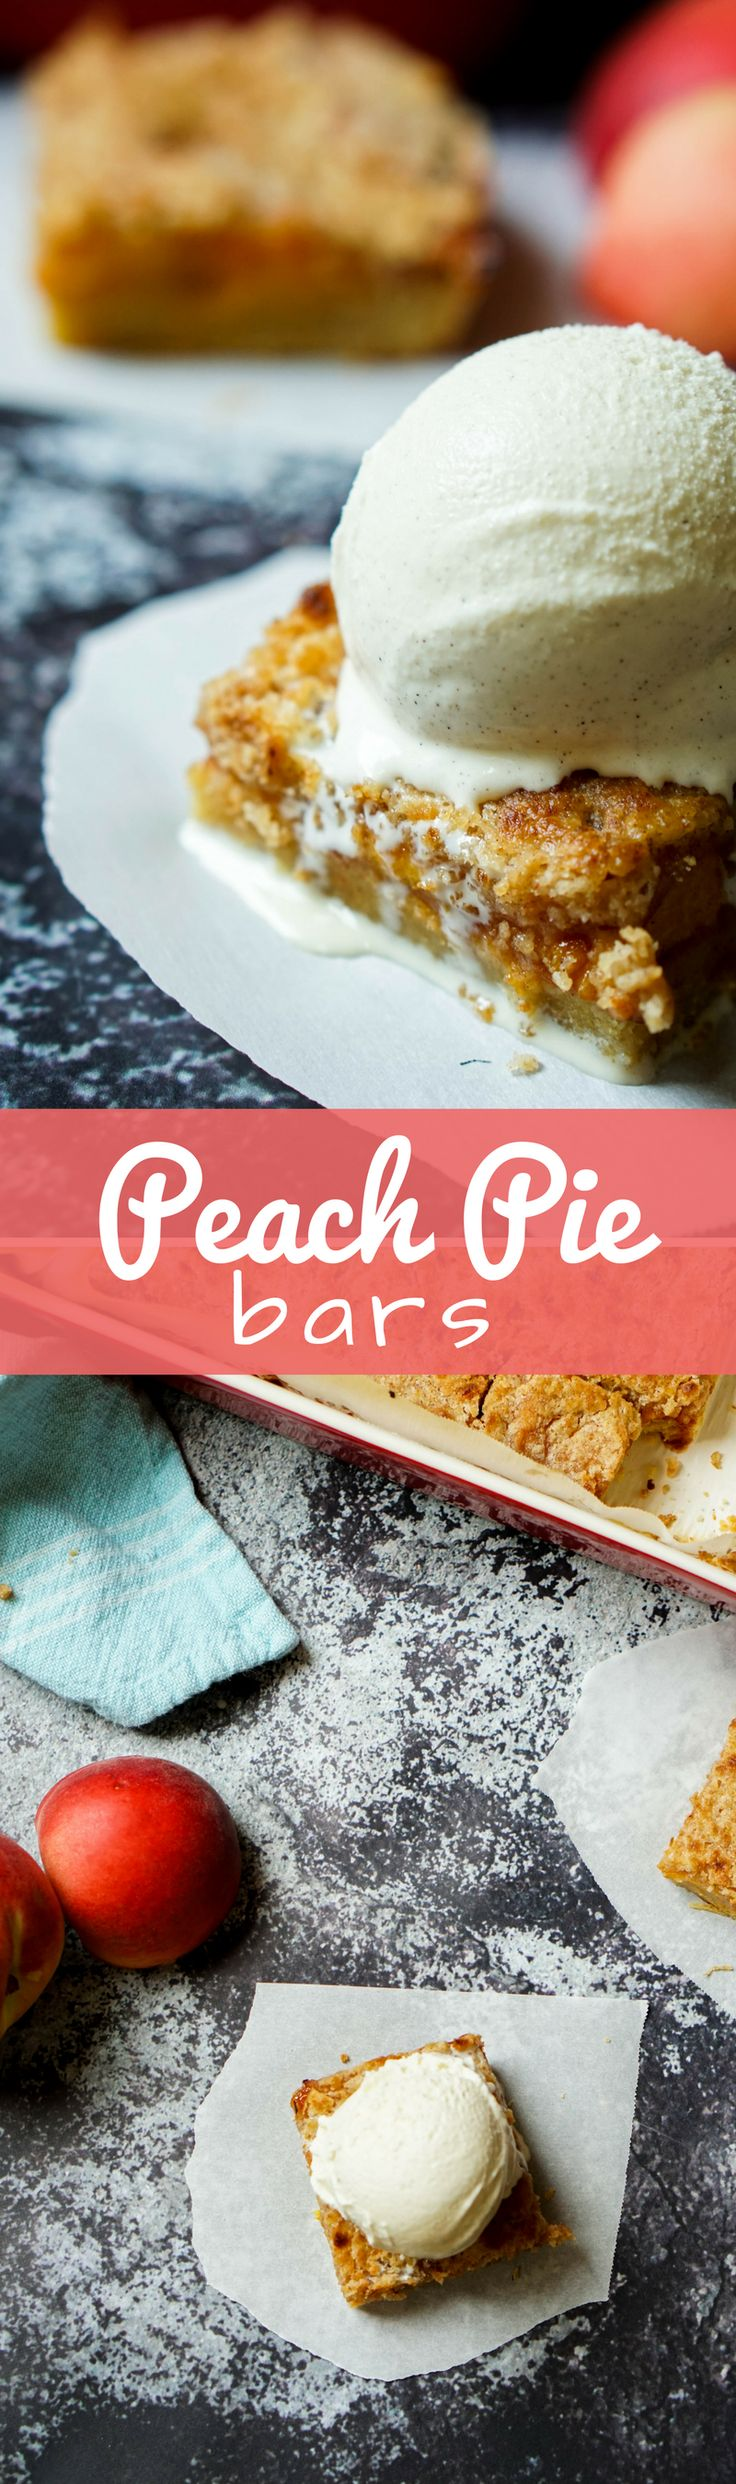 These peach pie bars are the perfect Summer treat whether you're running around outside or on the go! Layered with a thick crust, juicy peaches, and crispy streusel it's the best dessert for Summer!